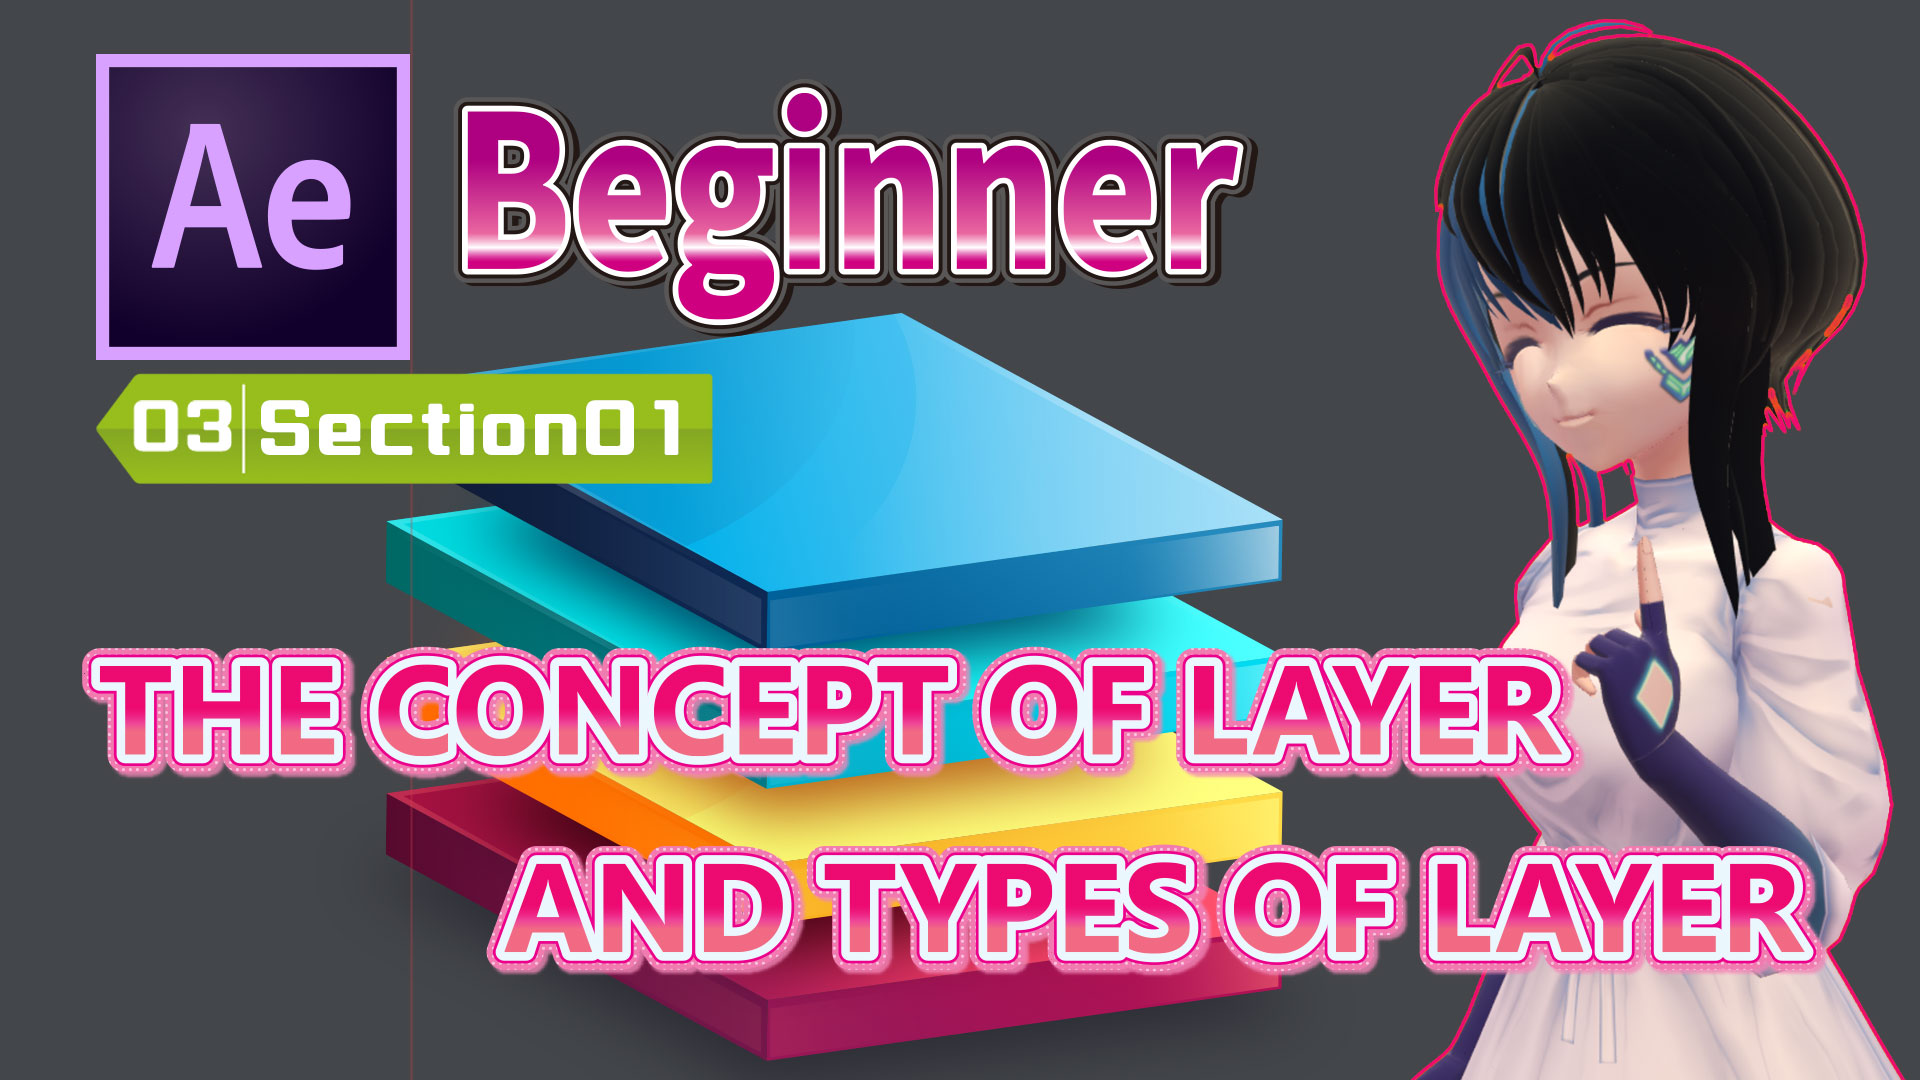 THE CONCEPT OF LAYER AND TYPES OF LAYER